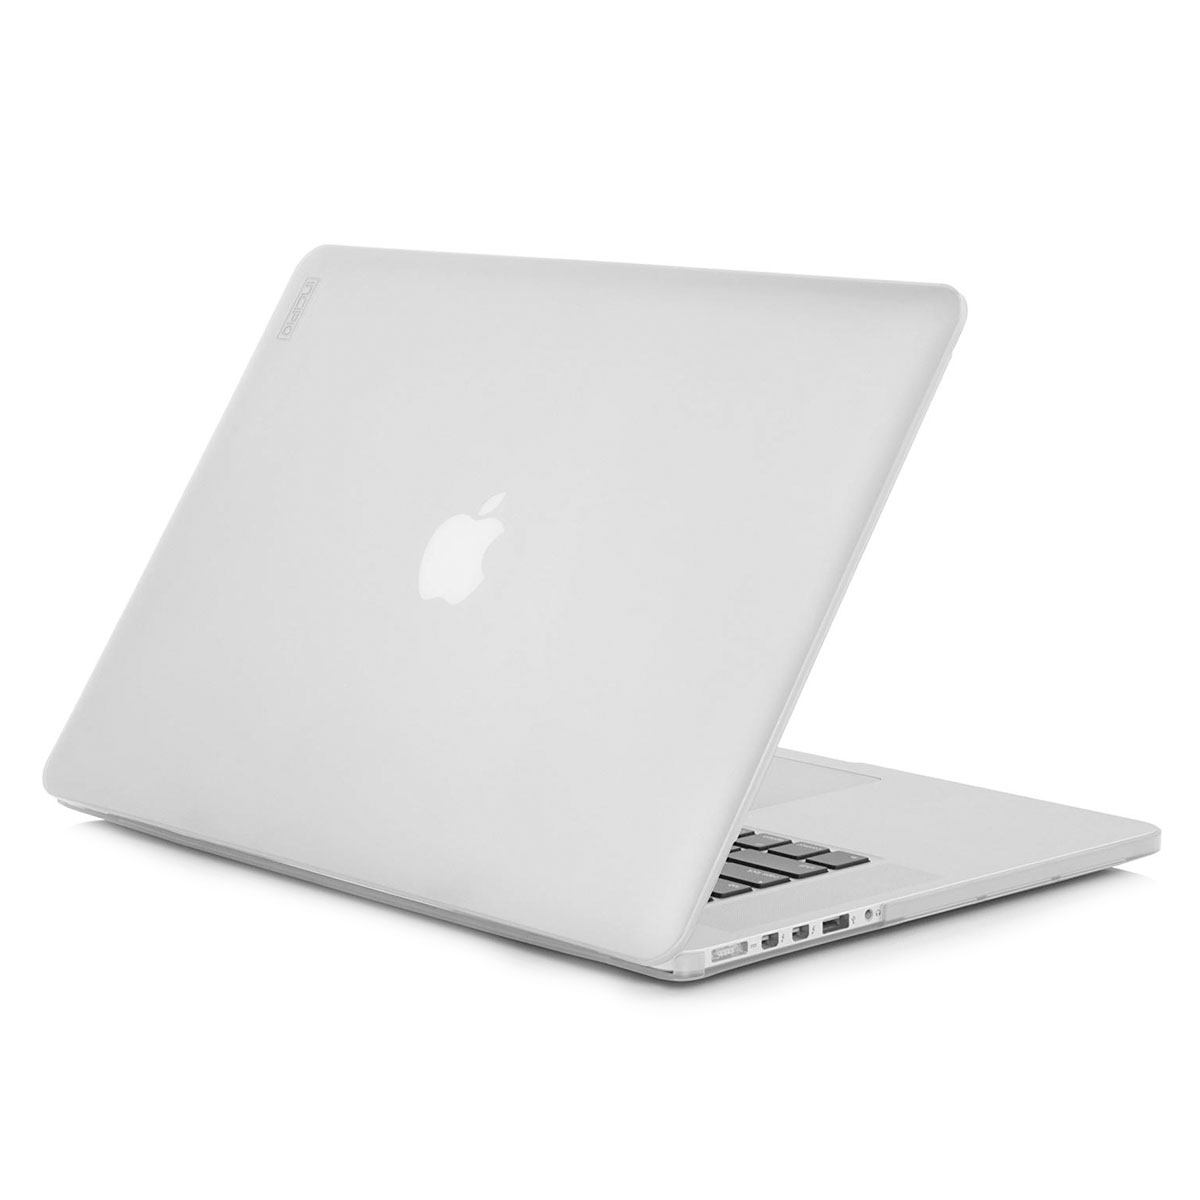 Incipio Macbook Pro 15 Feather Retina - Frost ( See Thru )